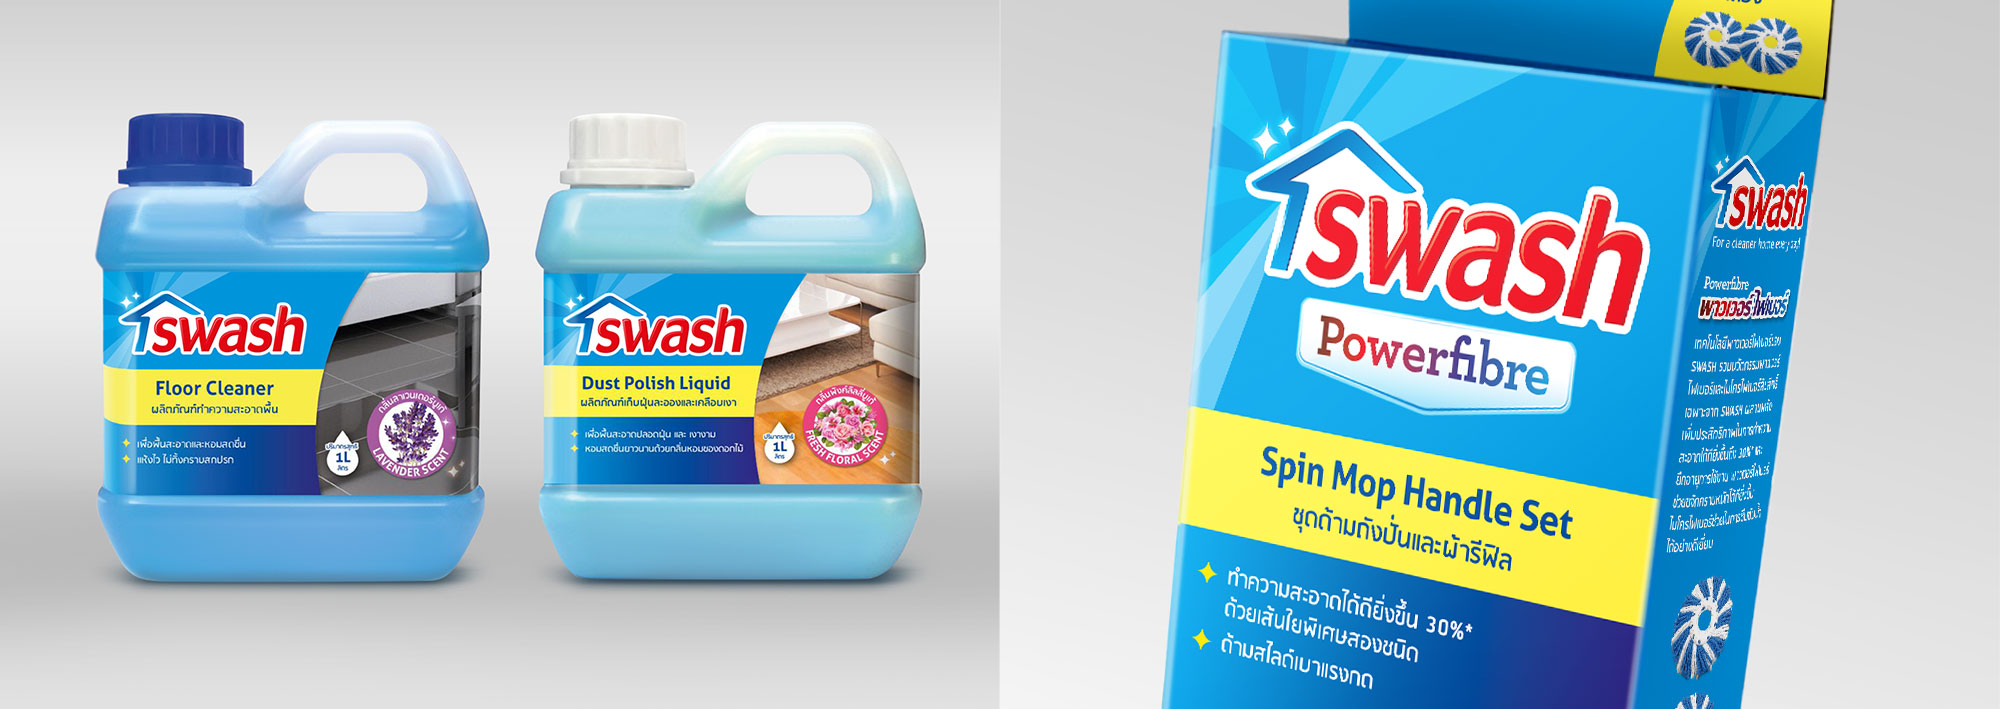 Swash Brand Packaging Design